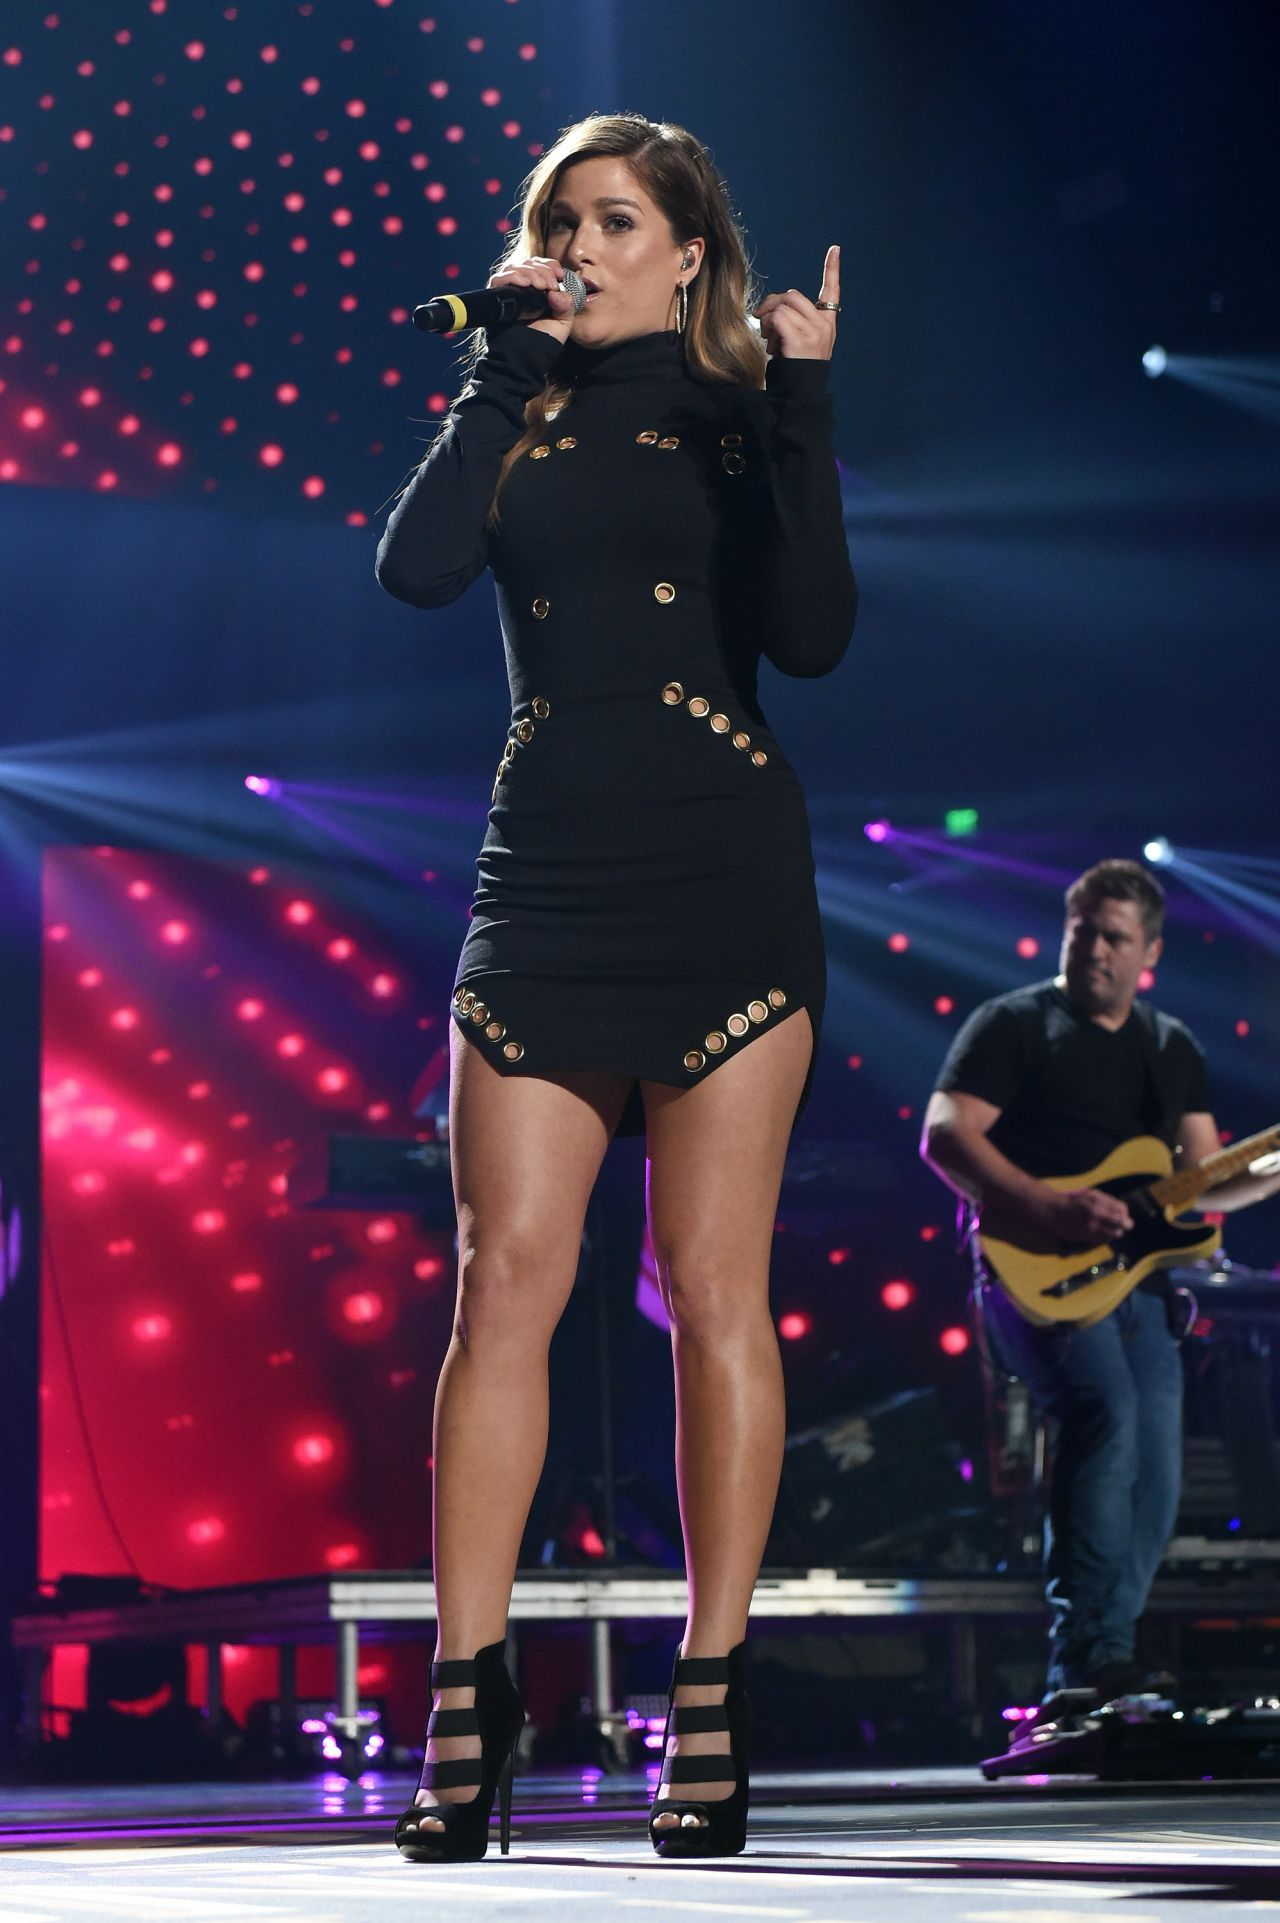 Cassadee Pope Performs At 2016 Iheartcountry Festival In